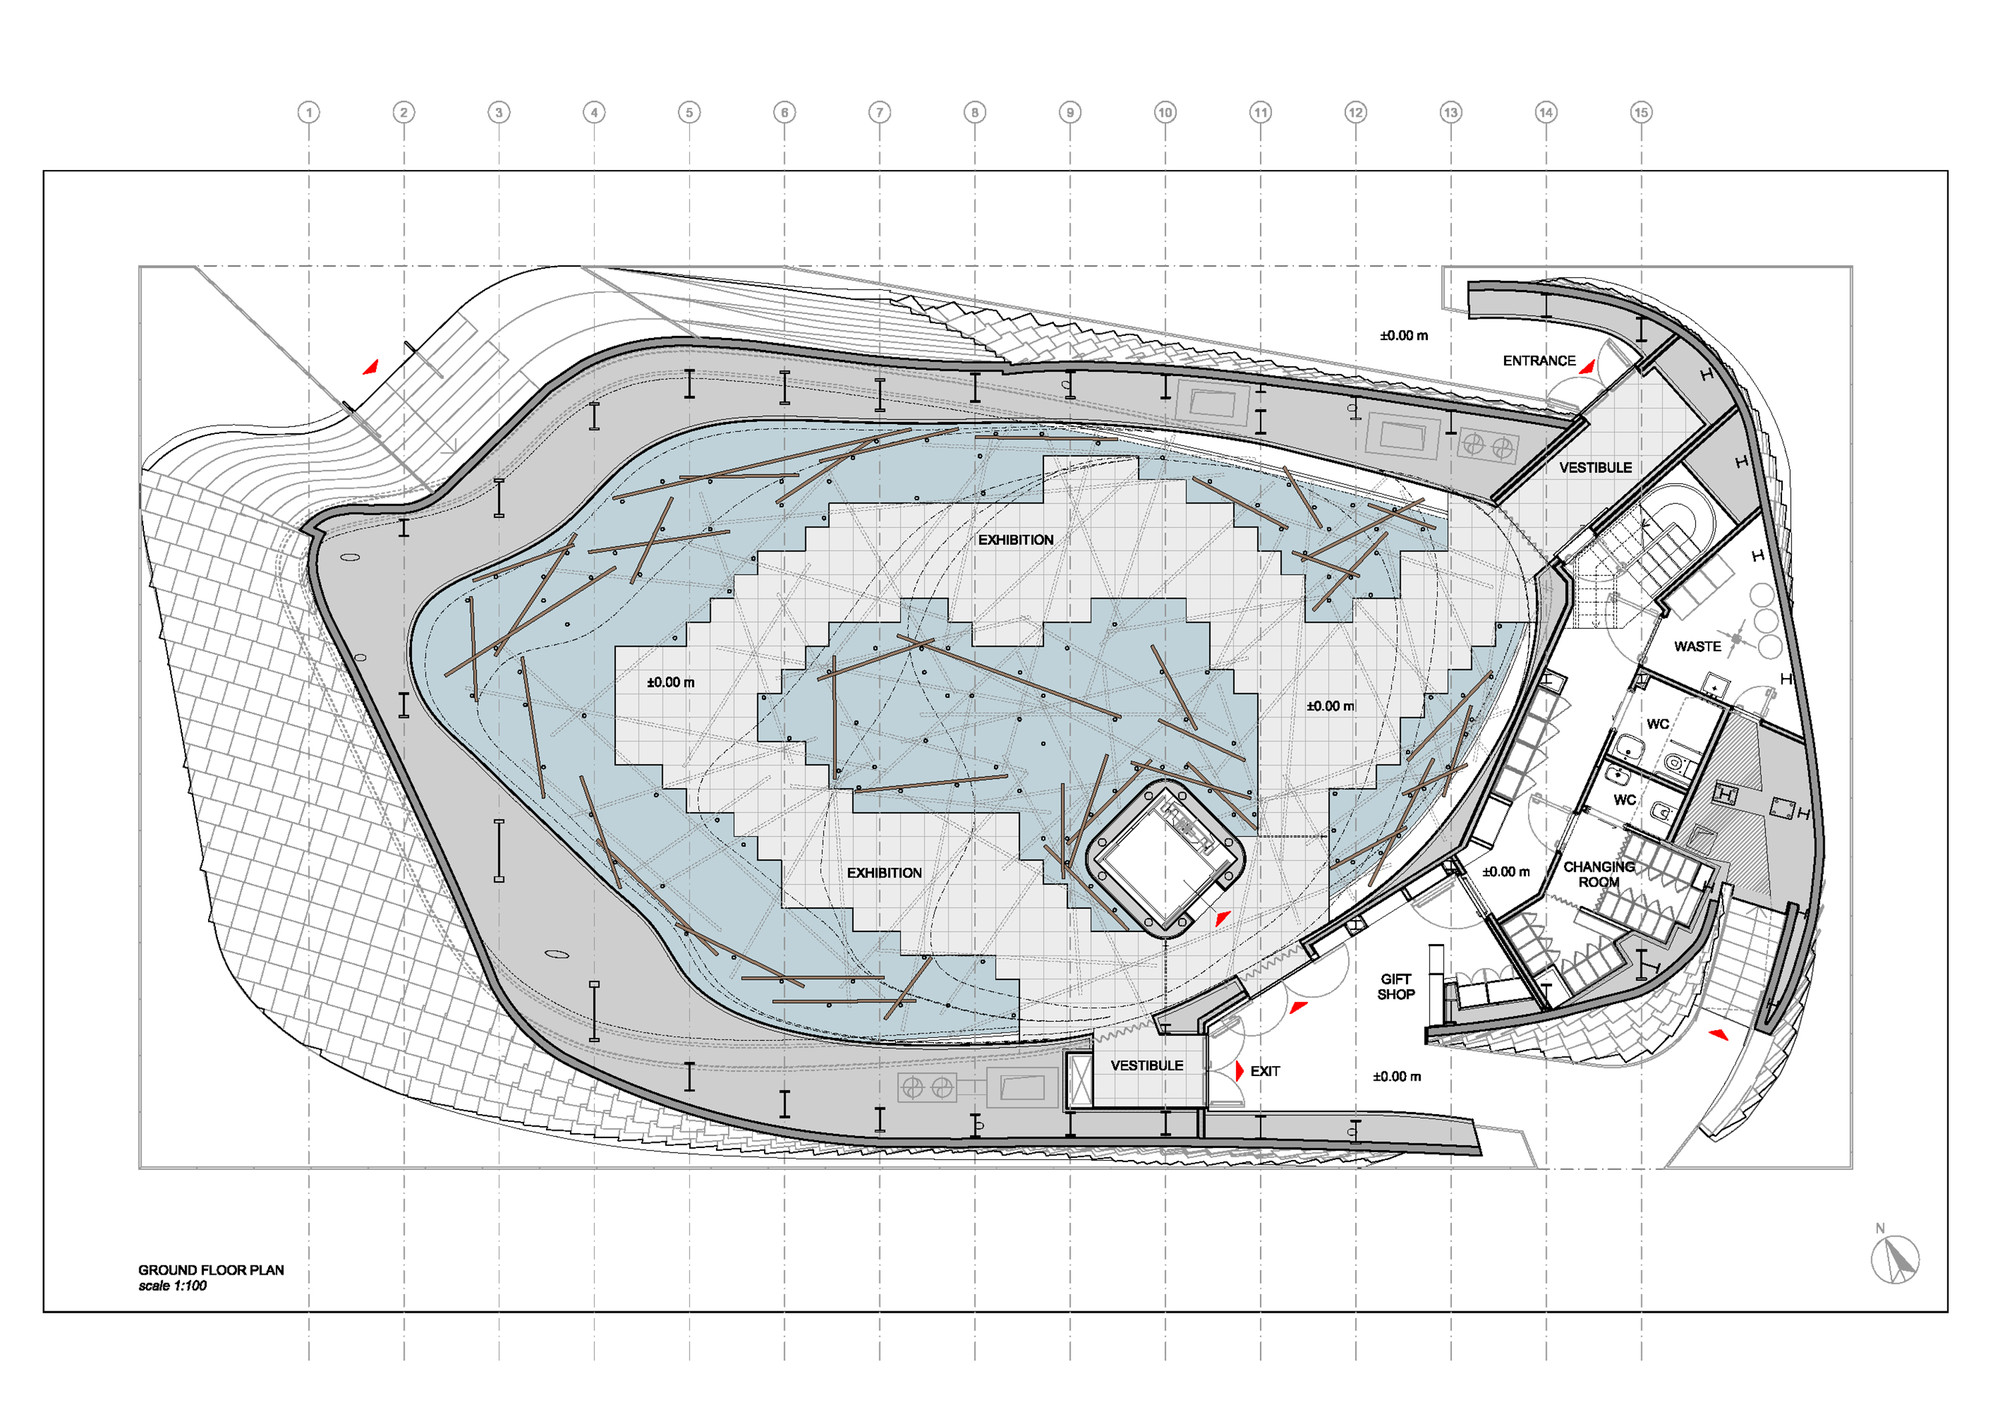 2832 Office Furniture Cad Blocks together with Tavolini 2d together with 55499220e58ece61f2000059 Vanke Pavilion Milan Expo 2015 Daniel Libeskind Ground Floor Plan in addition Node additionally Details Stairs Dwg Section For Autocad. on chair plan dwg